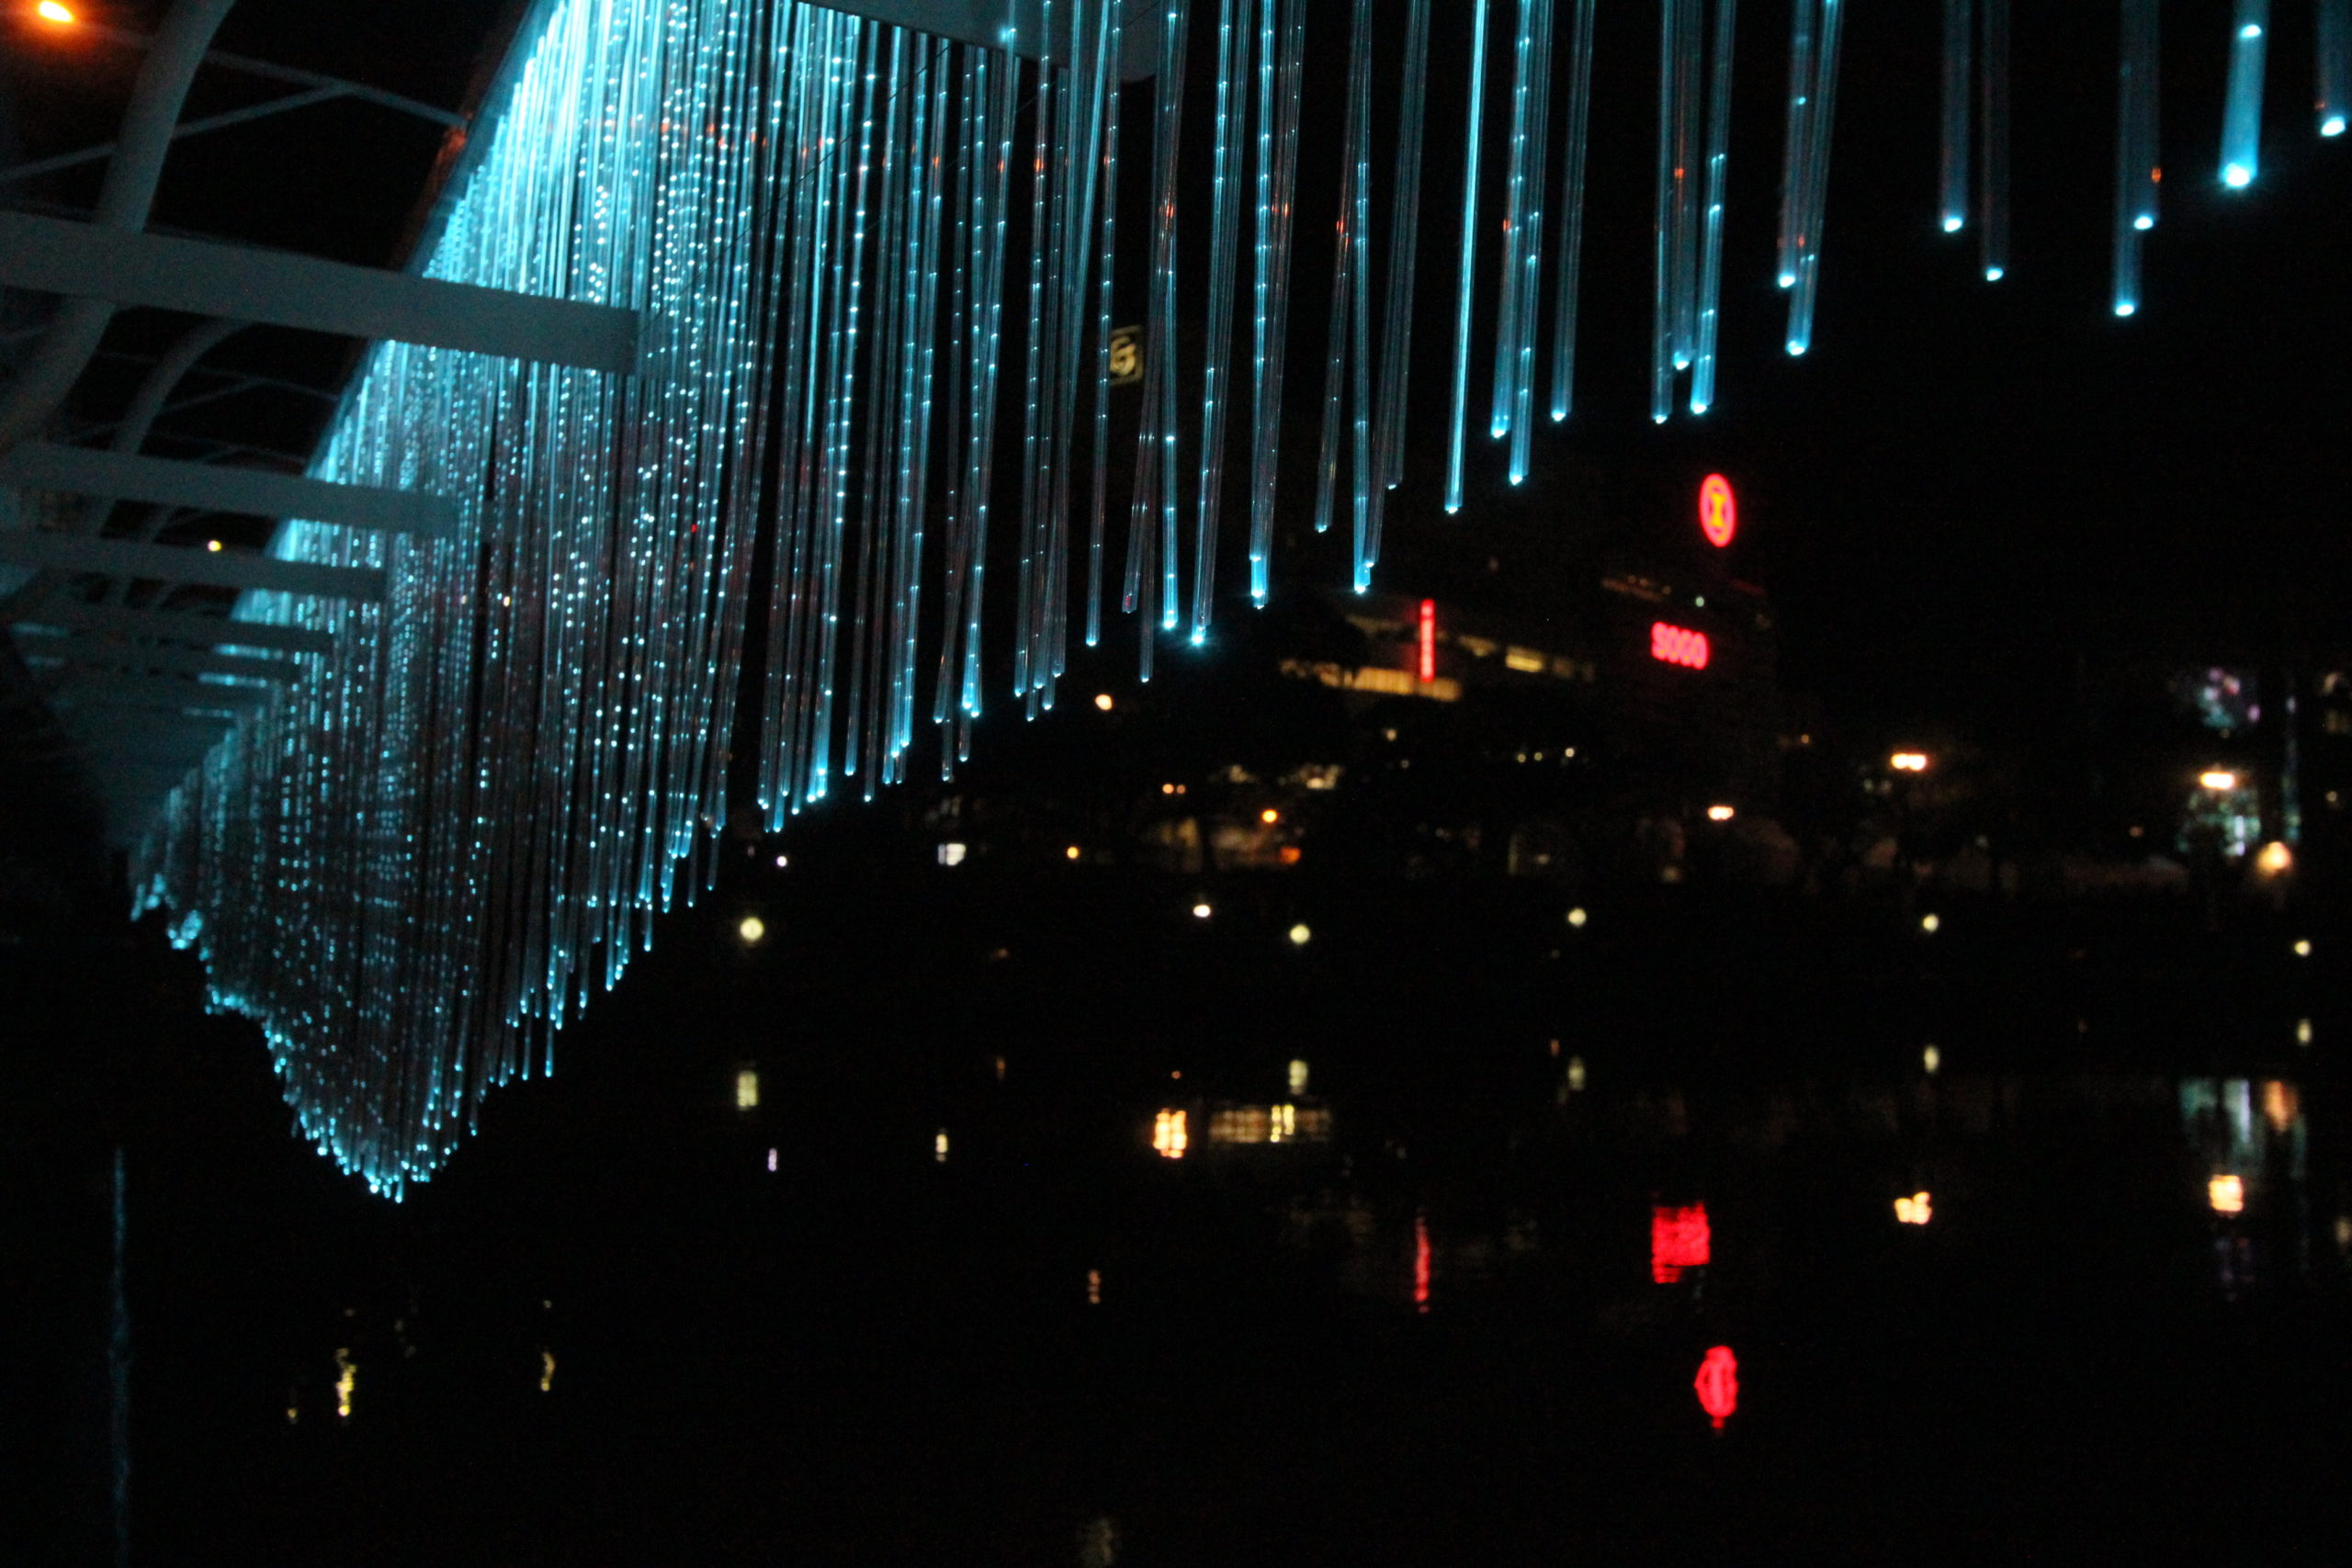 spatial practice architecture office Los Angeles Hong Kong indigo digital waterfall light installation tokushima japan city sparks